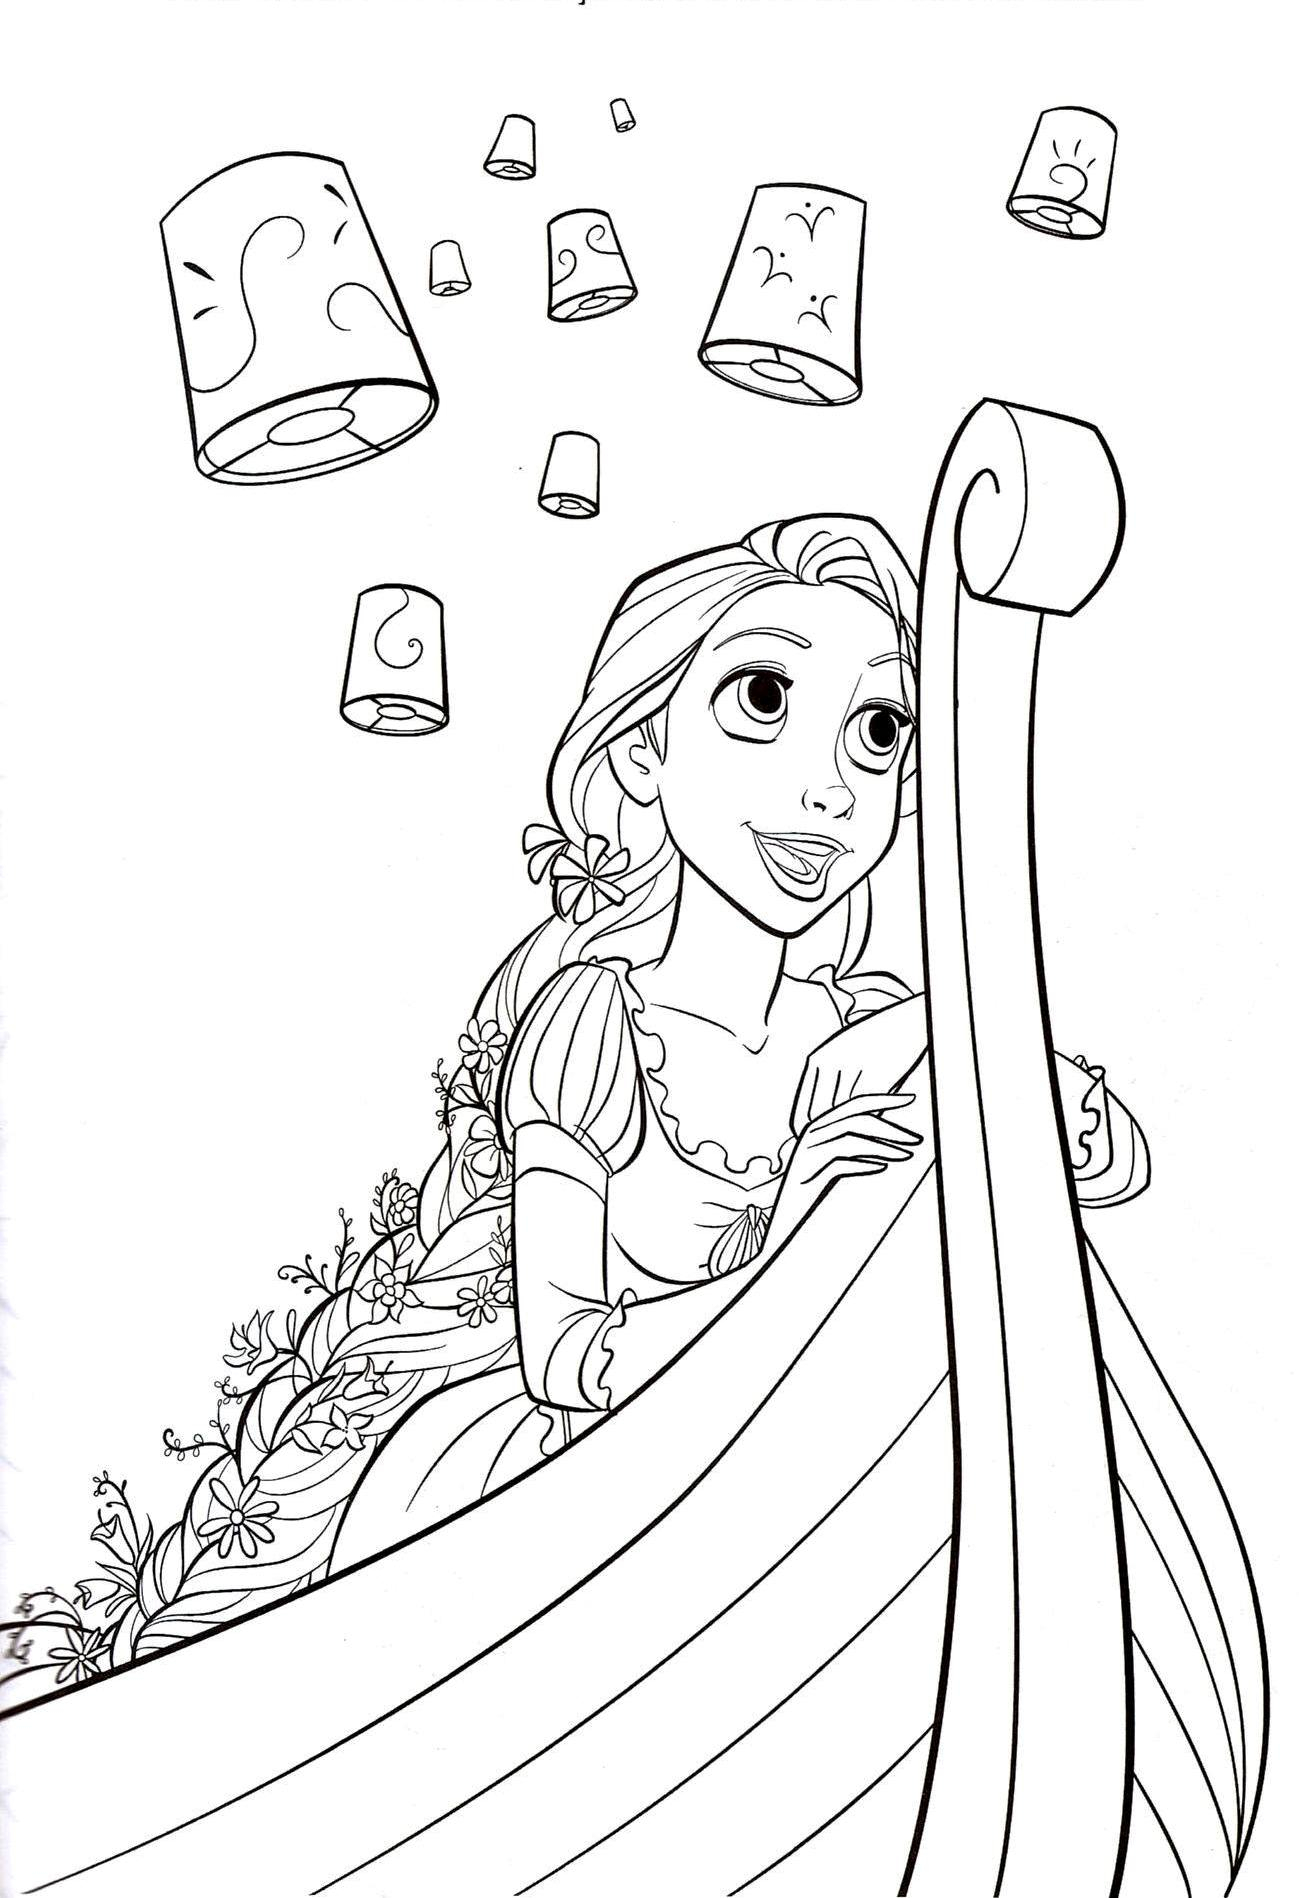 Disney Rapunzel Drawing At Getdrawings Com Free For Personal Use